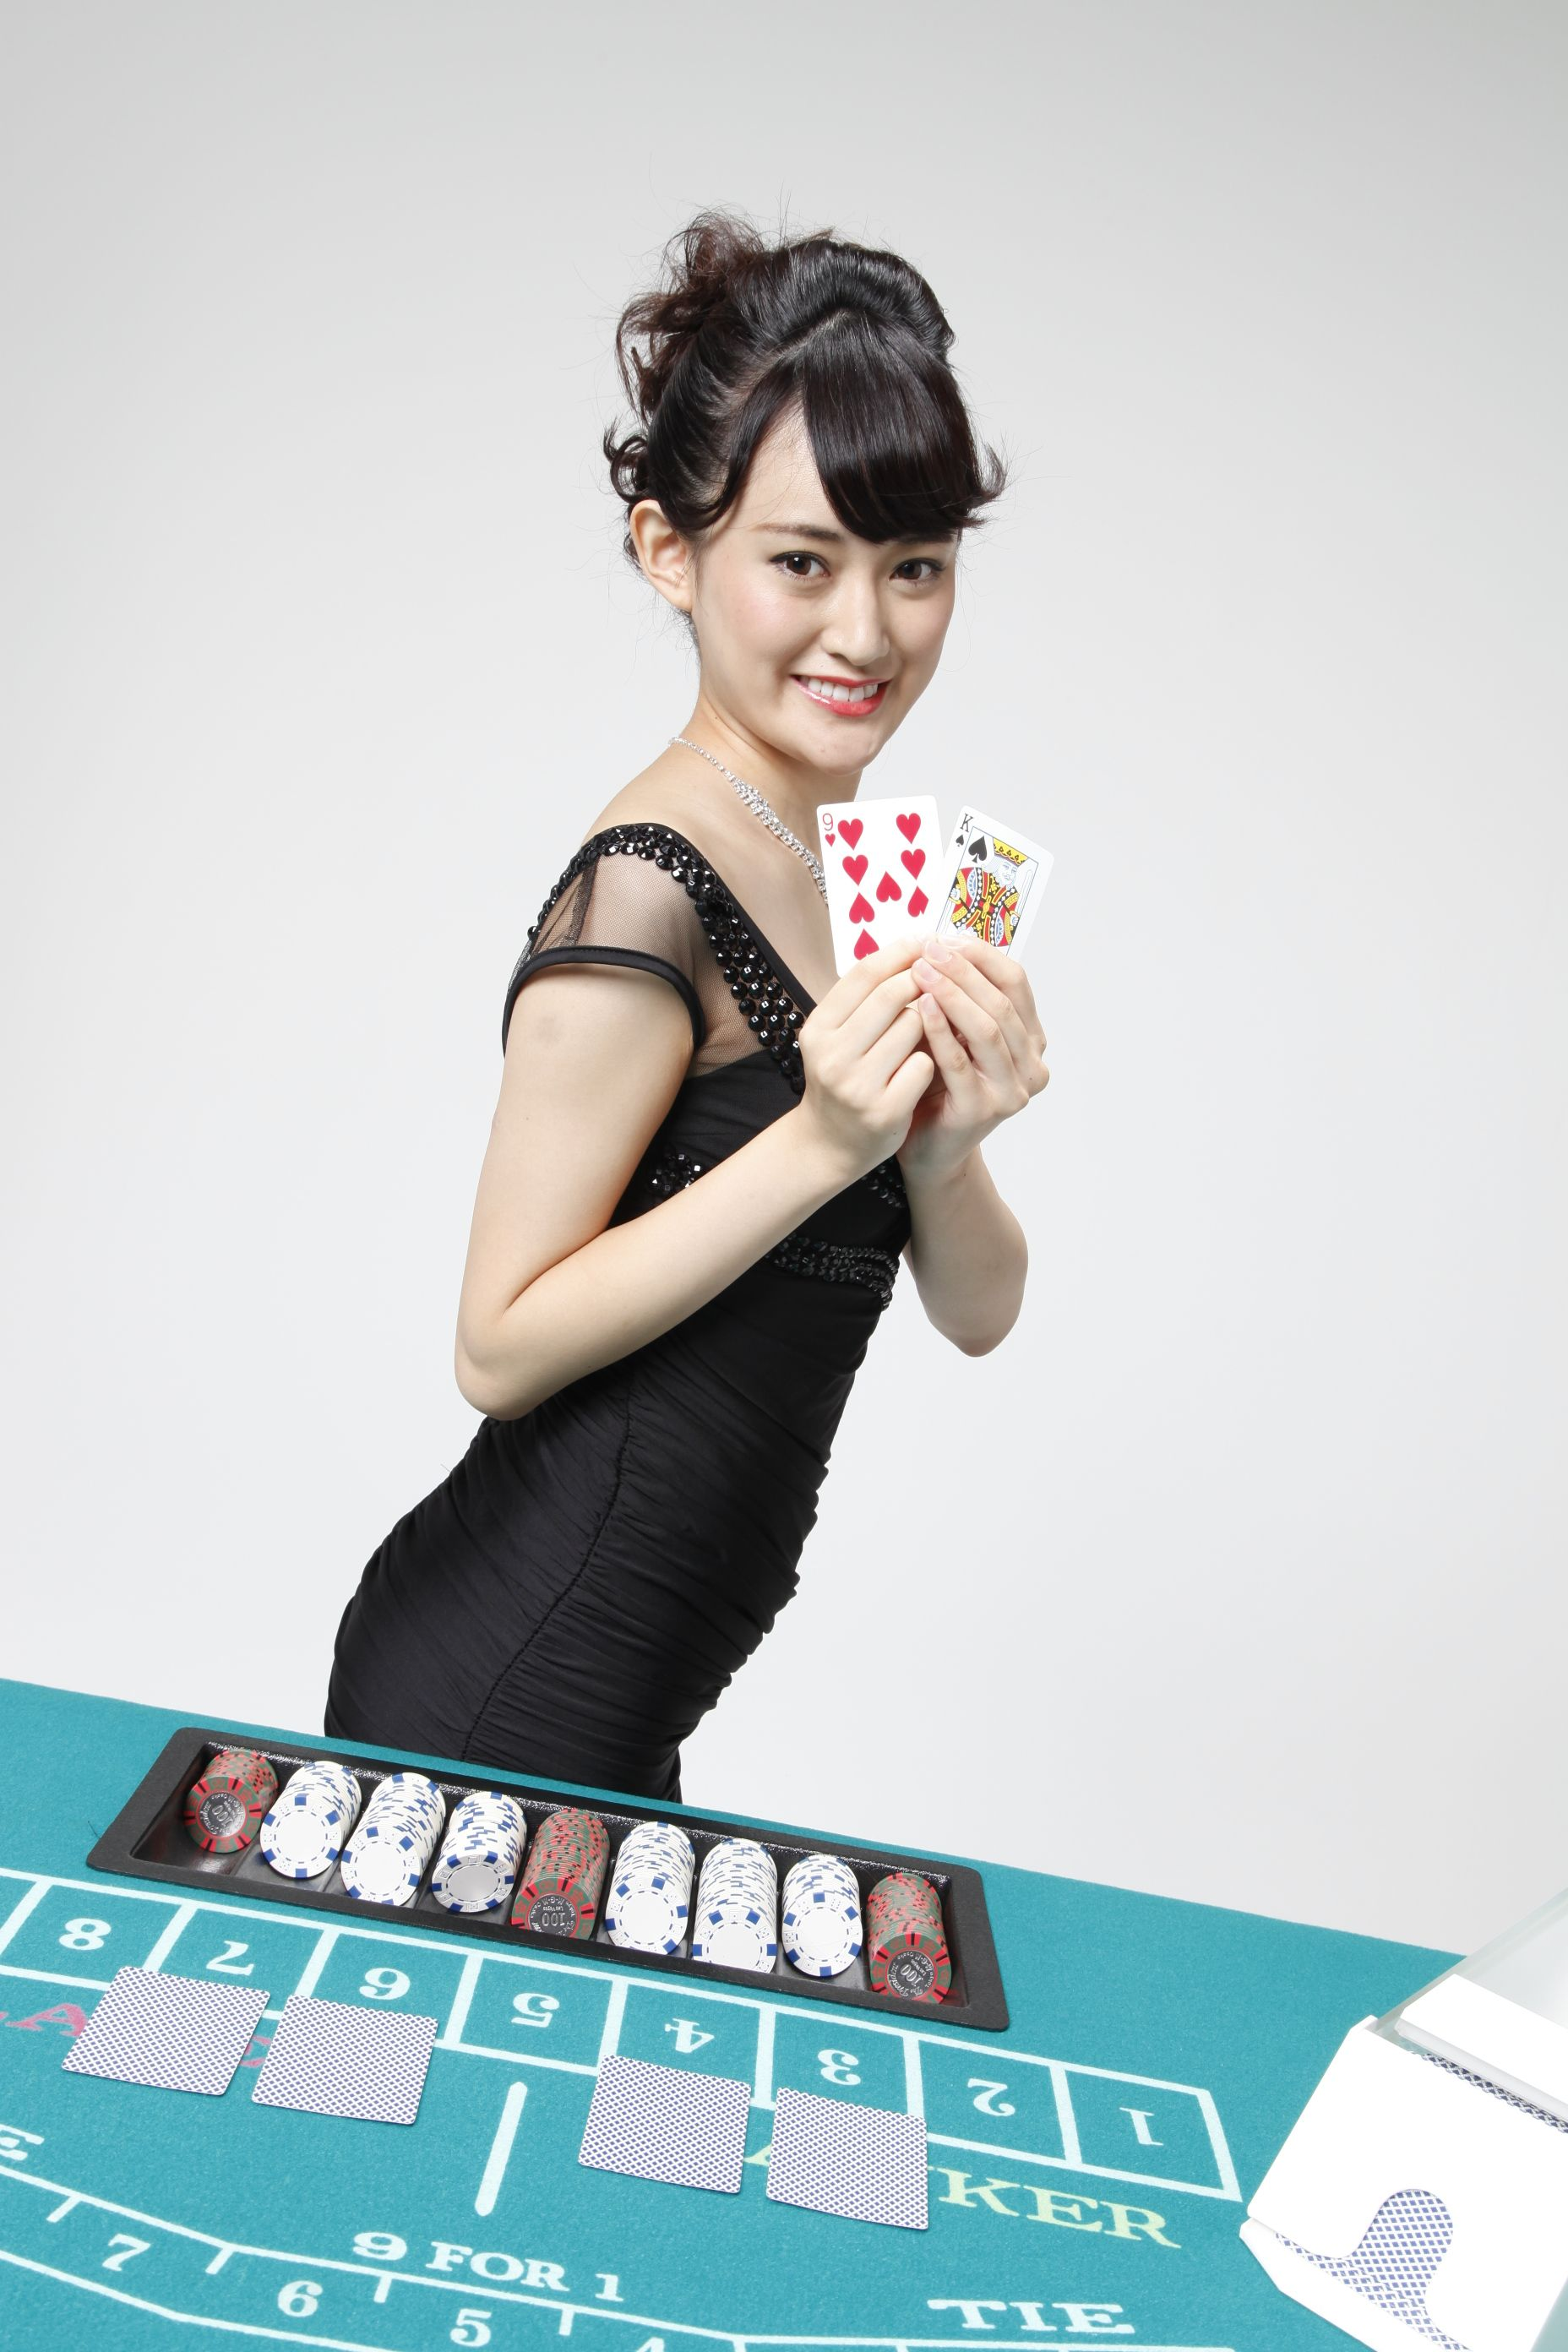 Top Asian Online Casino Sites for 2019